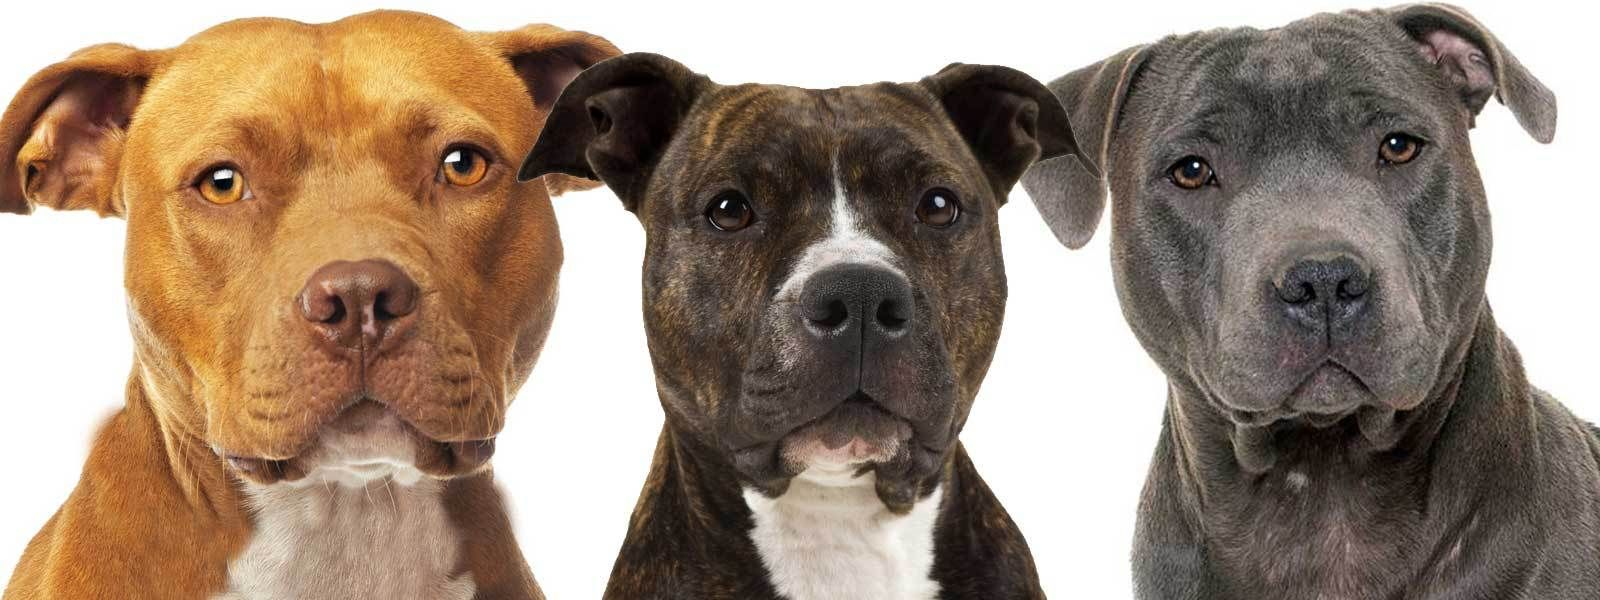 23 How Much Does An American Pitbull Terrier Cost In 2020